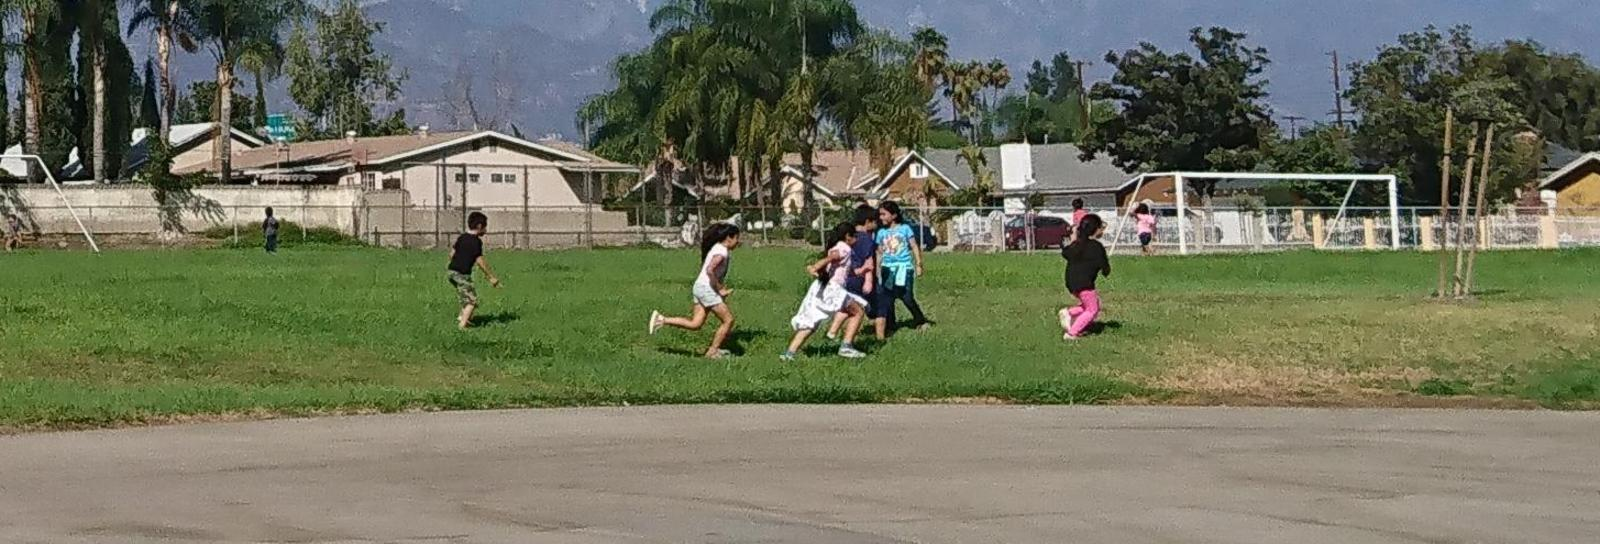 Allison started 100 Mile Club this week! The students are having a blast exercising and hanging out with friends after school. https://allison.pusd.org/apps/news/article/1098959